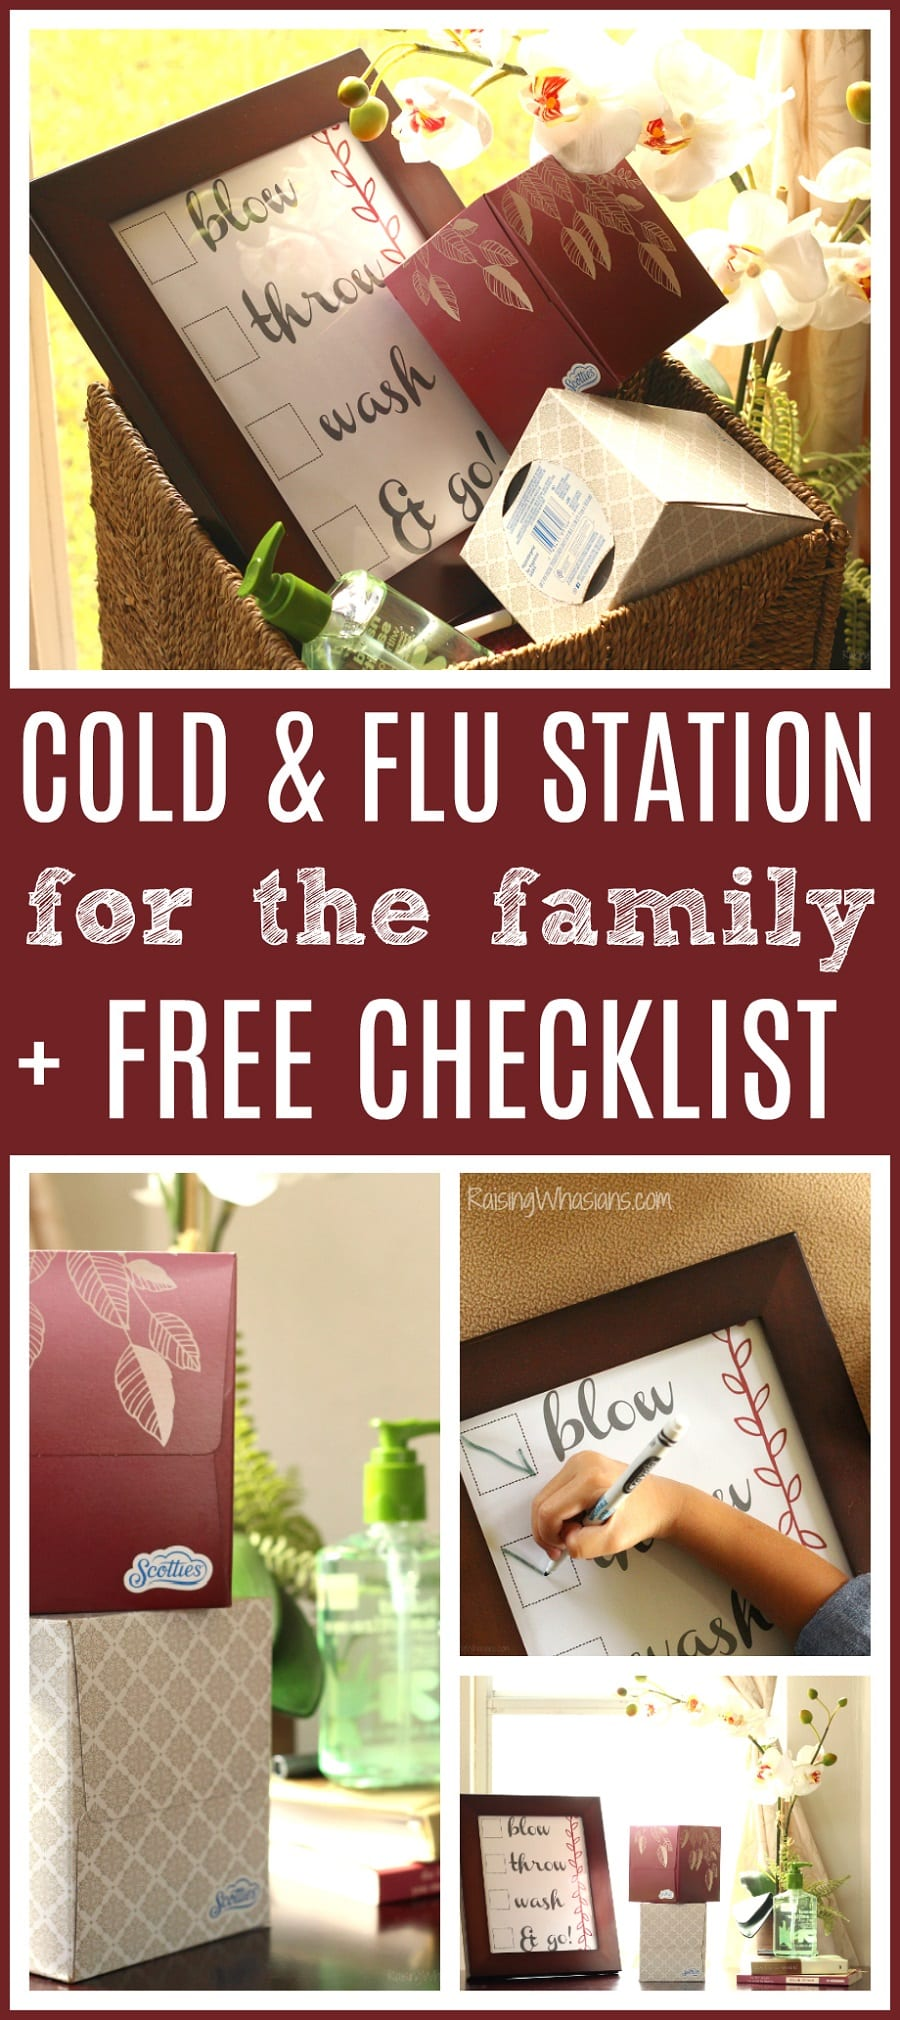 Free cold and flu checklist